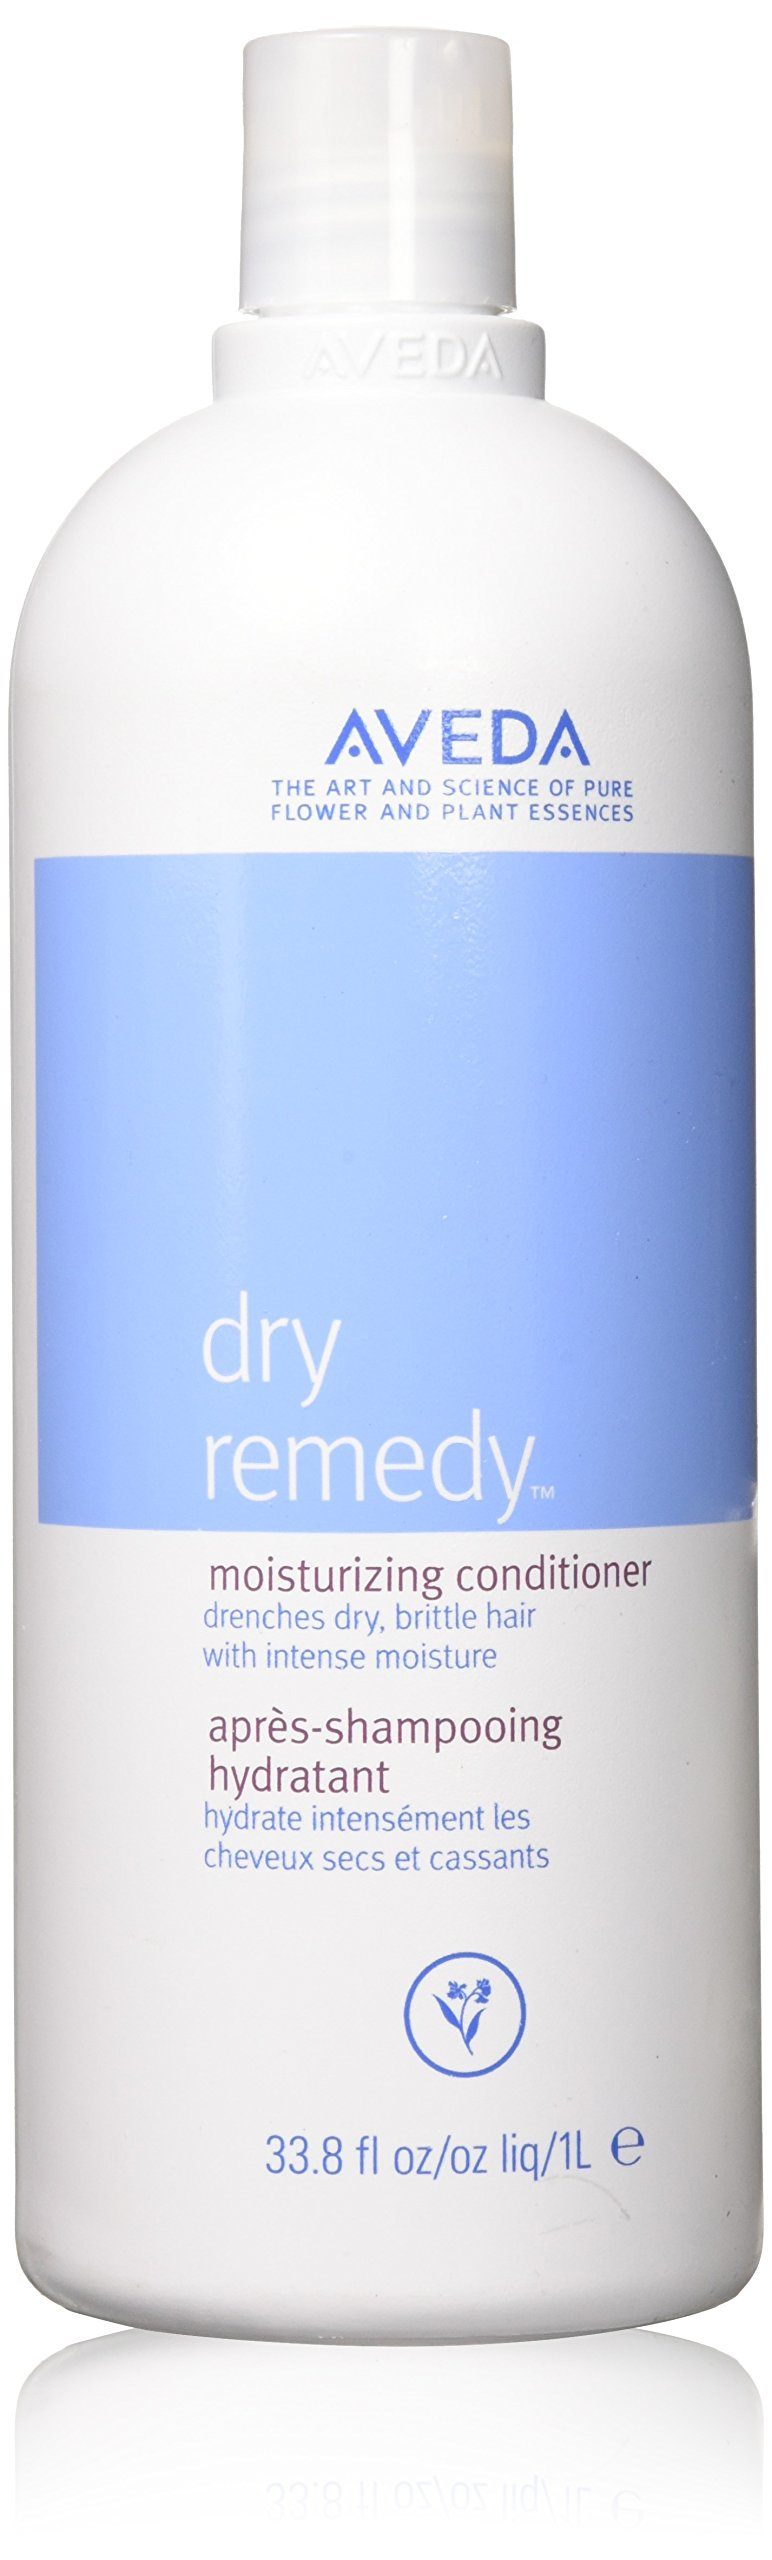 Discussion on this topic: Aveda Aveda Dry Remedy Moisturizing Conditioner 33.8 , aveda-aveda-dry-remedy-moisturizing-conditioner-33-8/